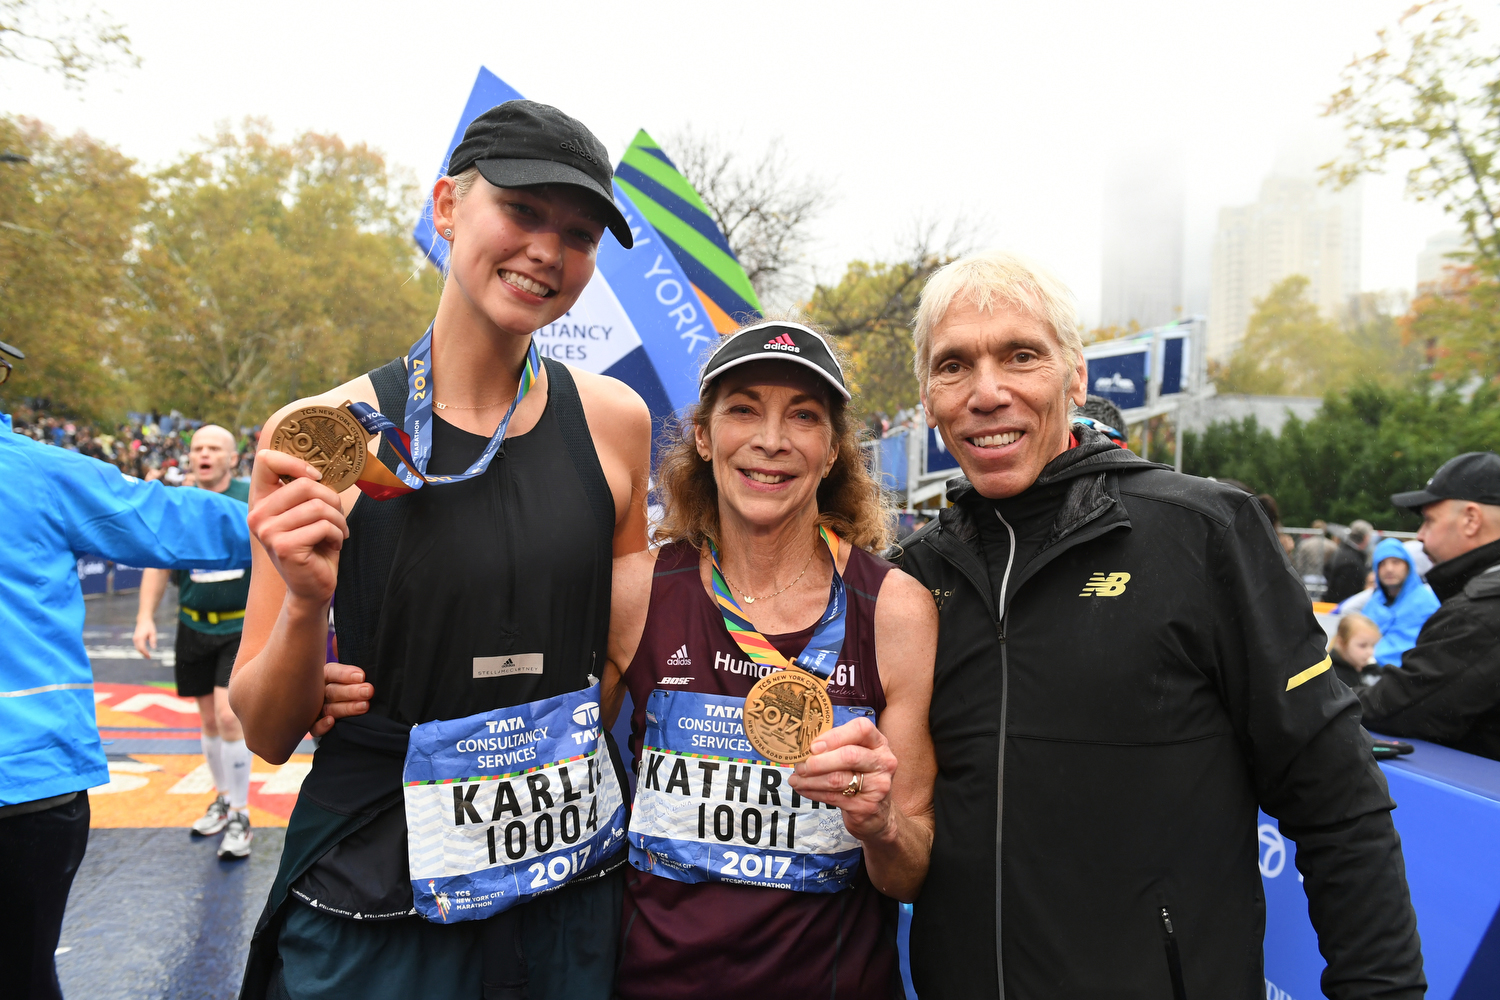 "<div class=""meta image-caption""><div class=""origin-logo origin-image none""><span>none</span></div><span class=""caption-text"">Karley Kloss, Katherine Switzer and Peter Ciaccia (NYRR' president of events and TCS NYC Marathon race director) (NYRR)</span></div>"